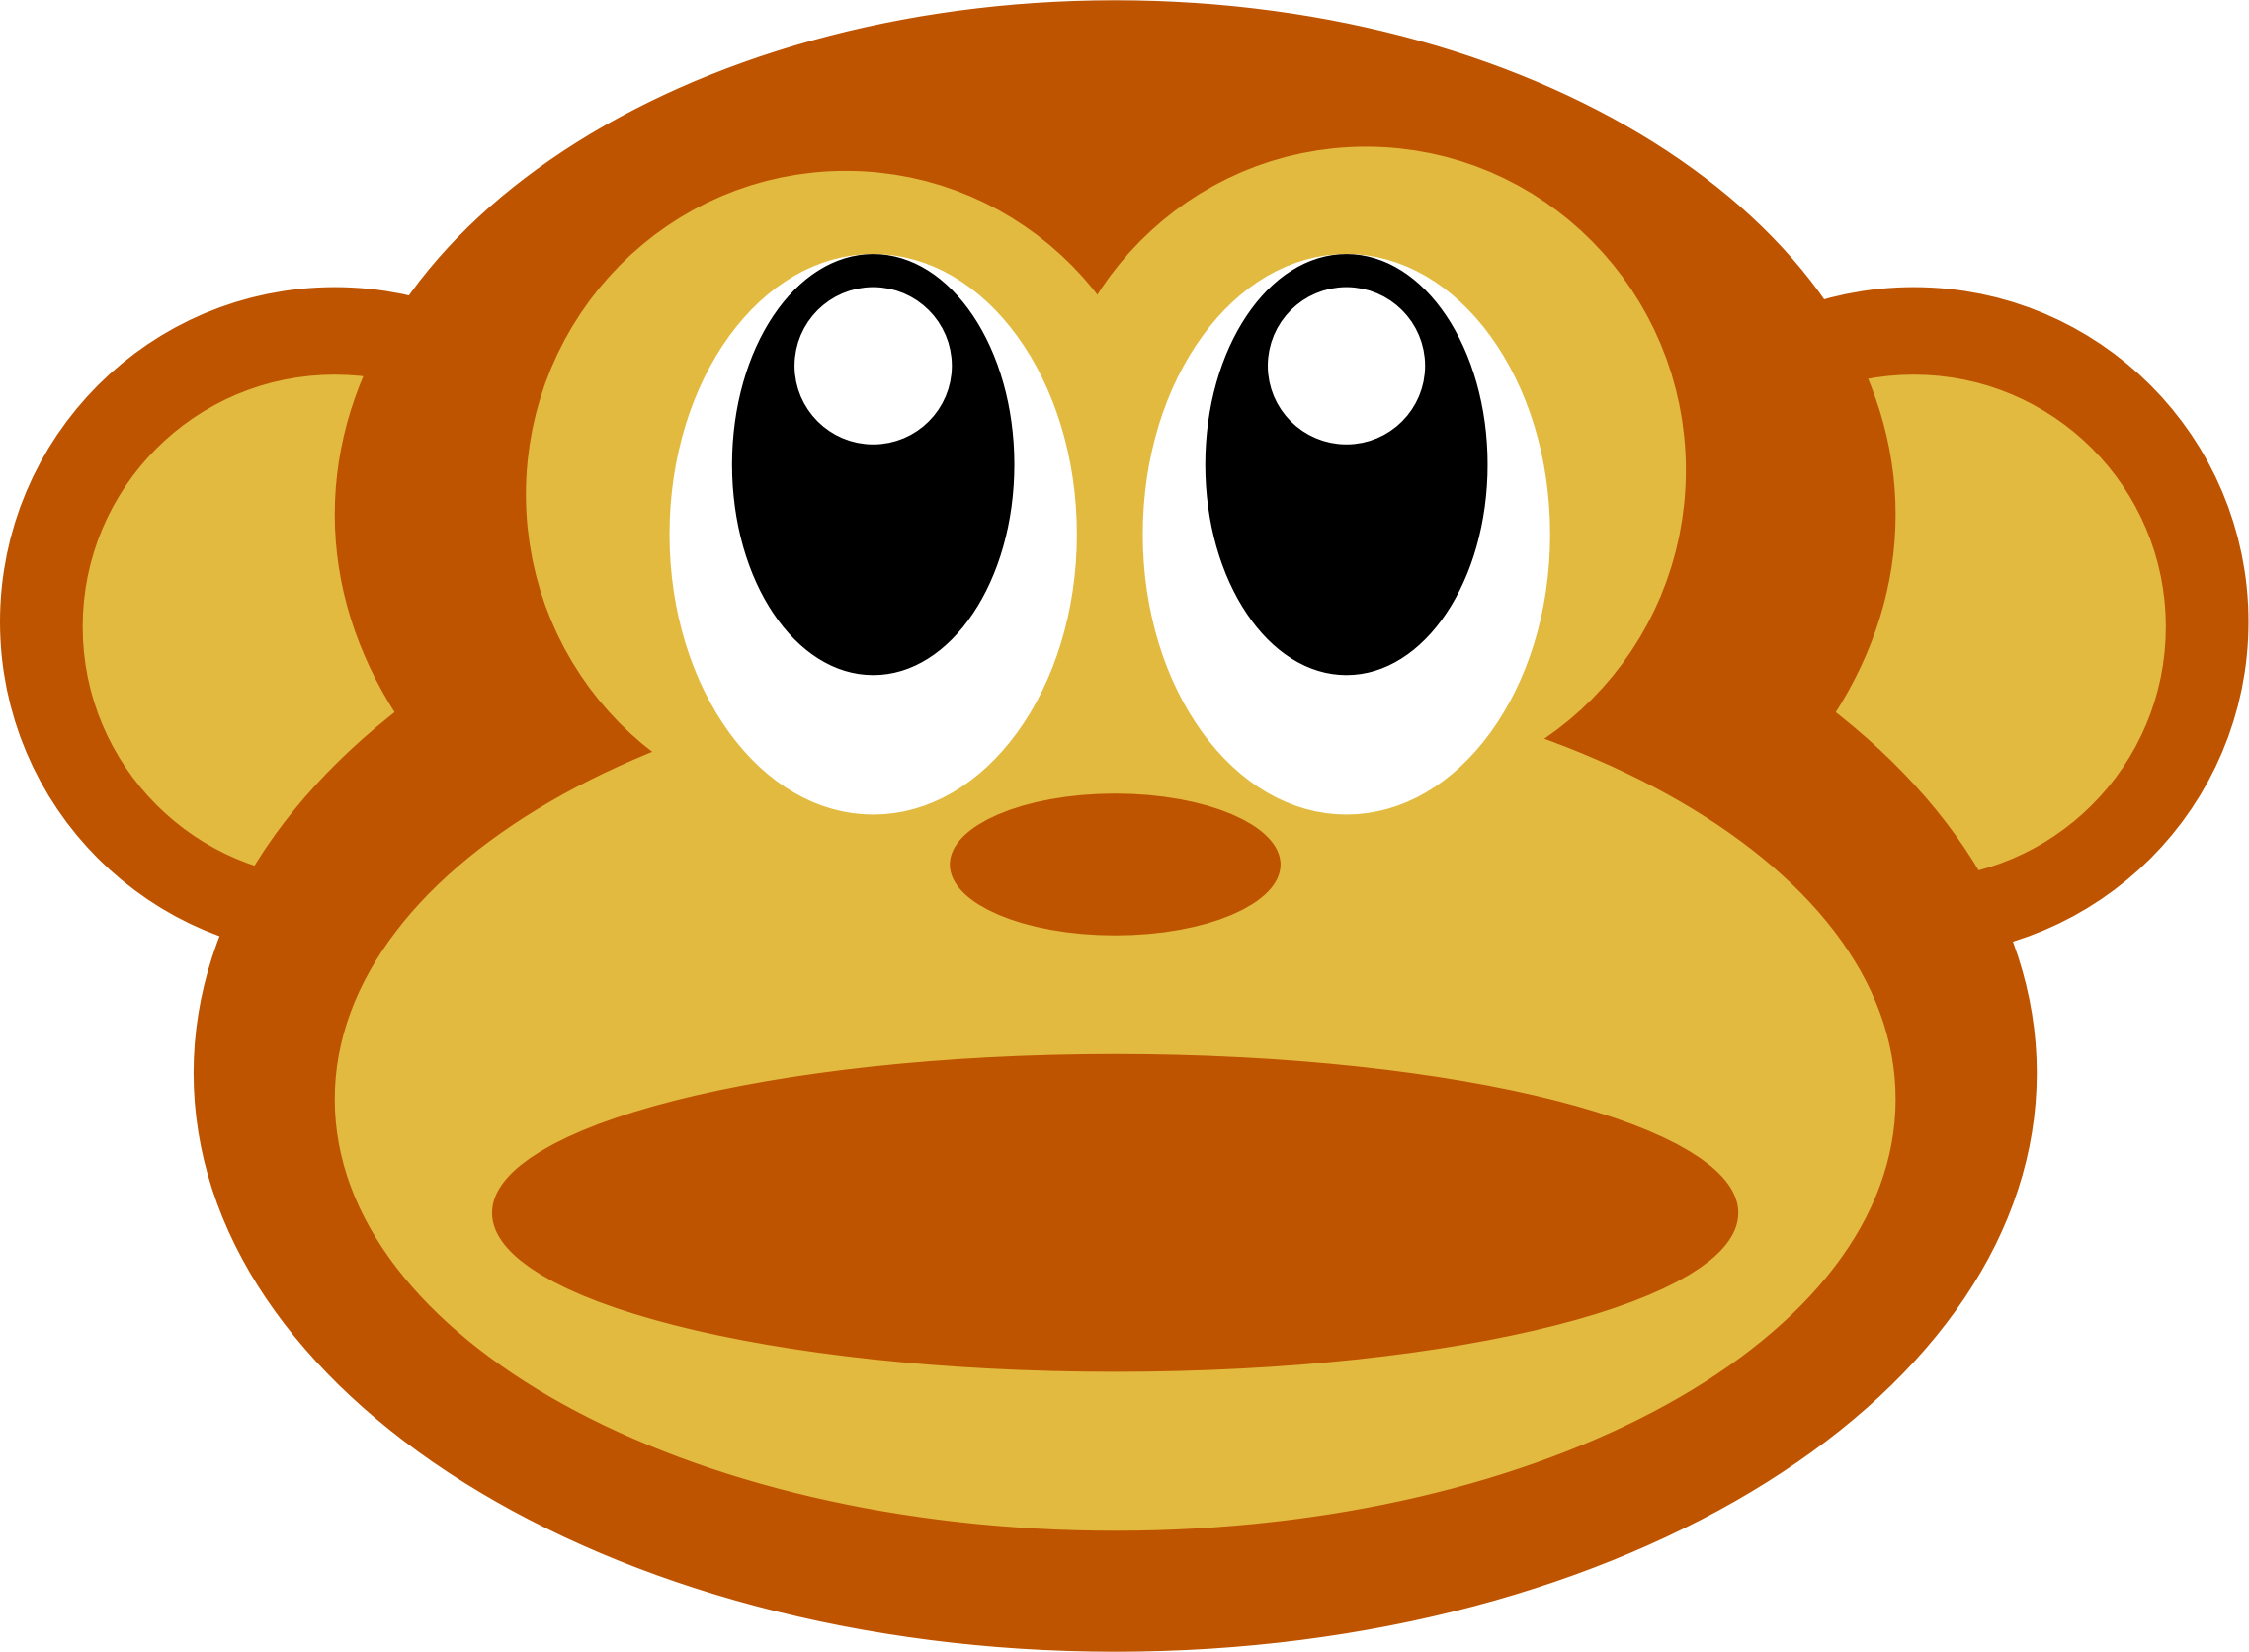 Clipart - monkey face :)